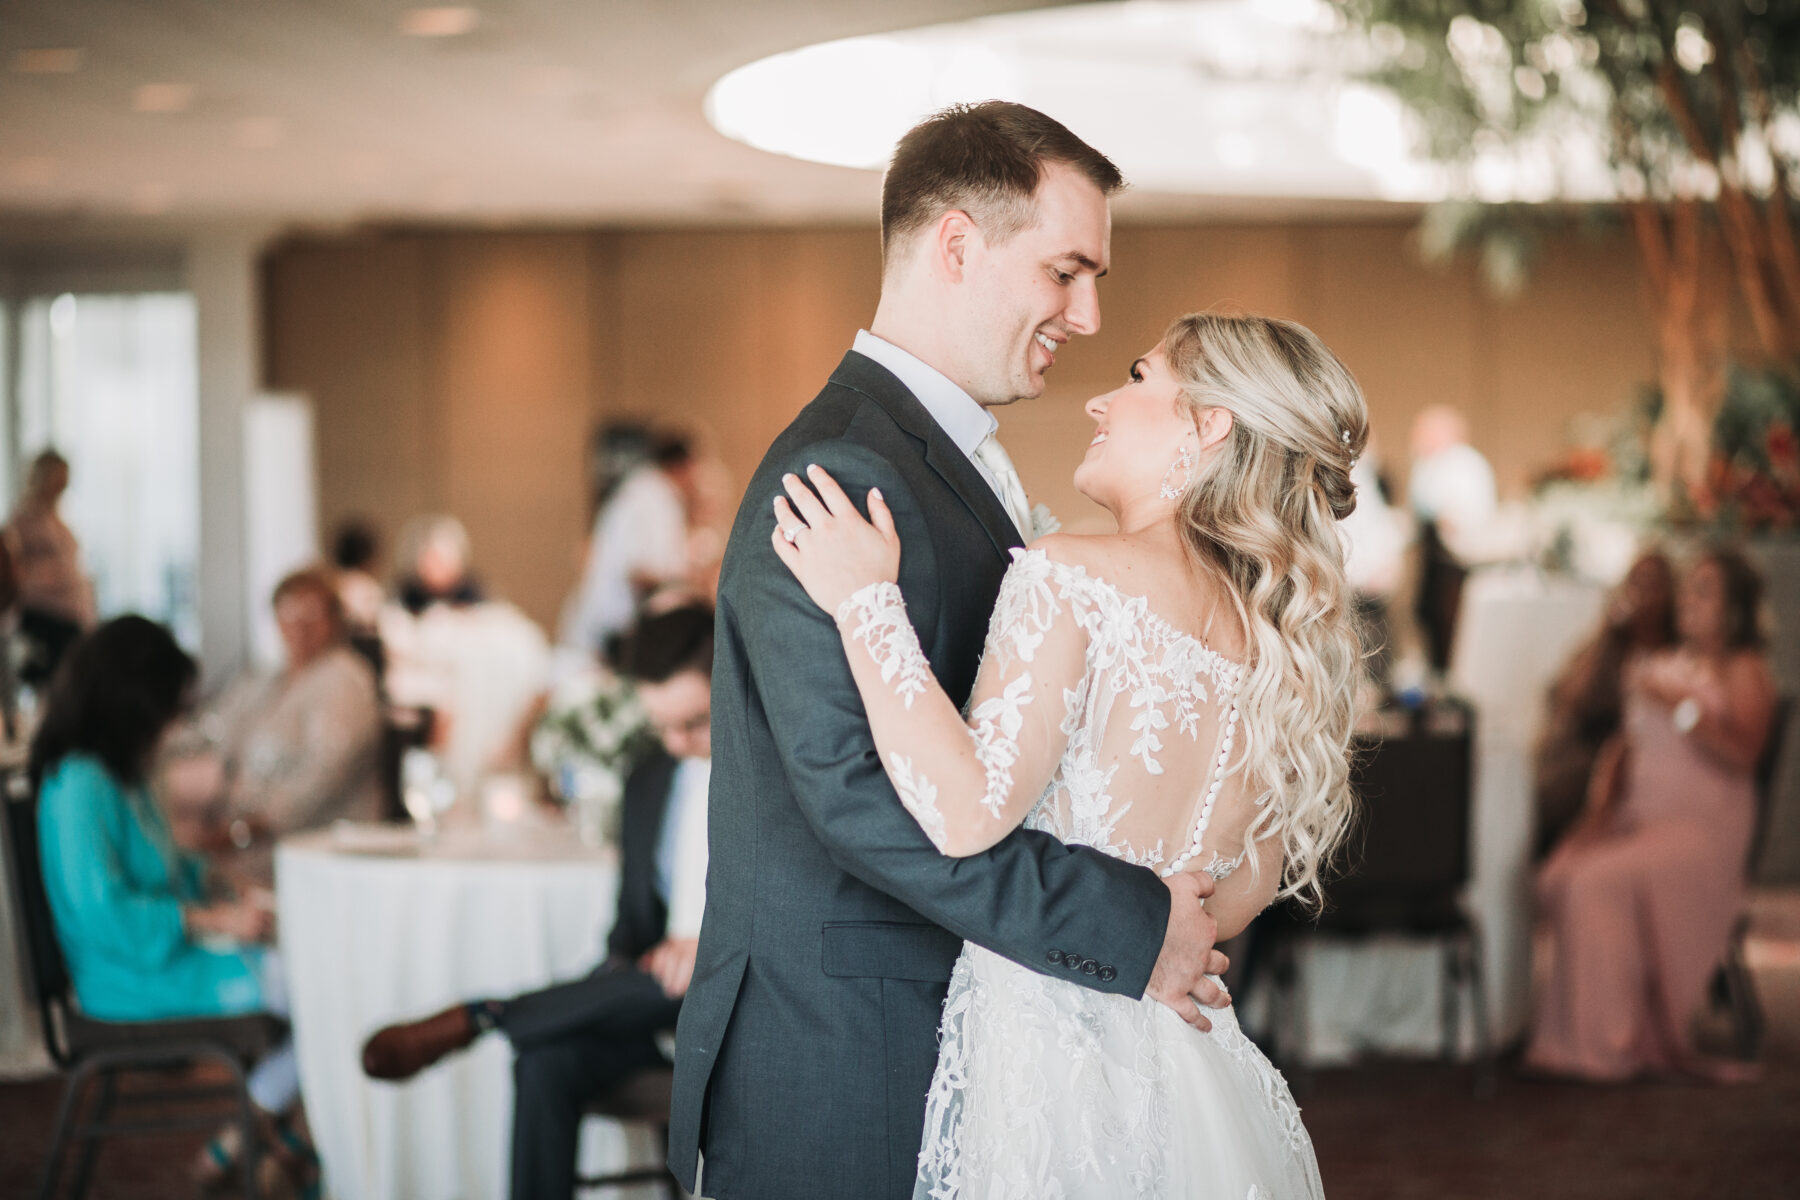 First dance wedding photography: Romantic Country Club Soiree by Juniper Weddings featured on Nashville Bride Guide